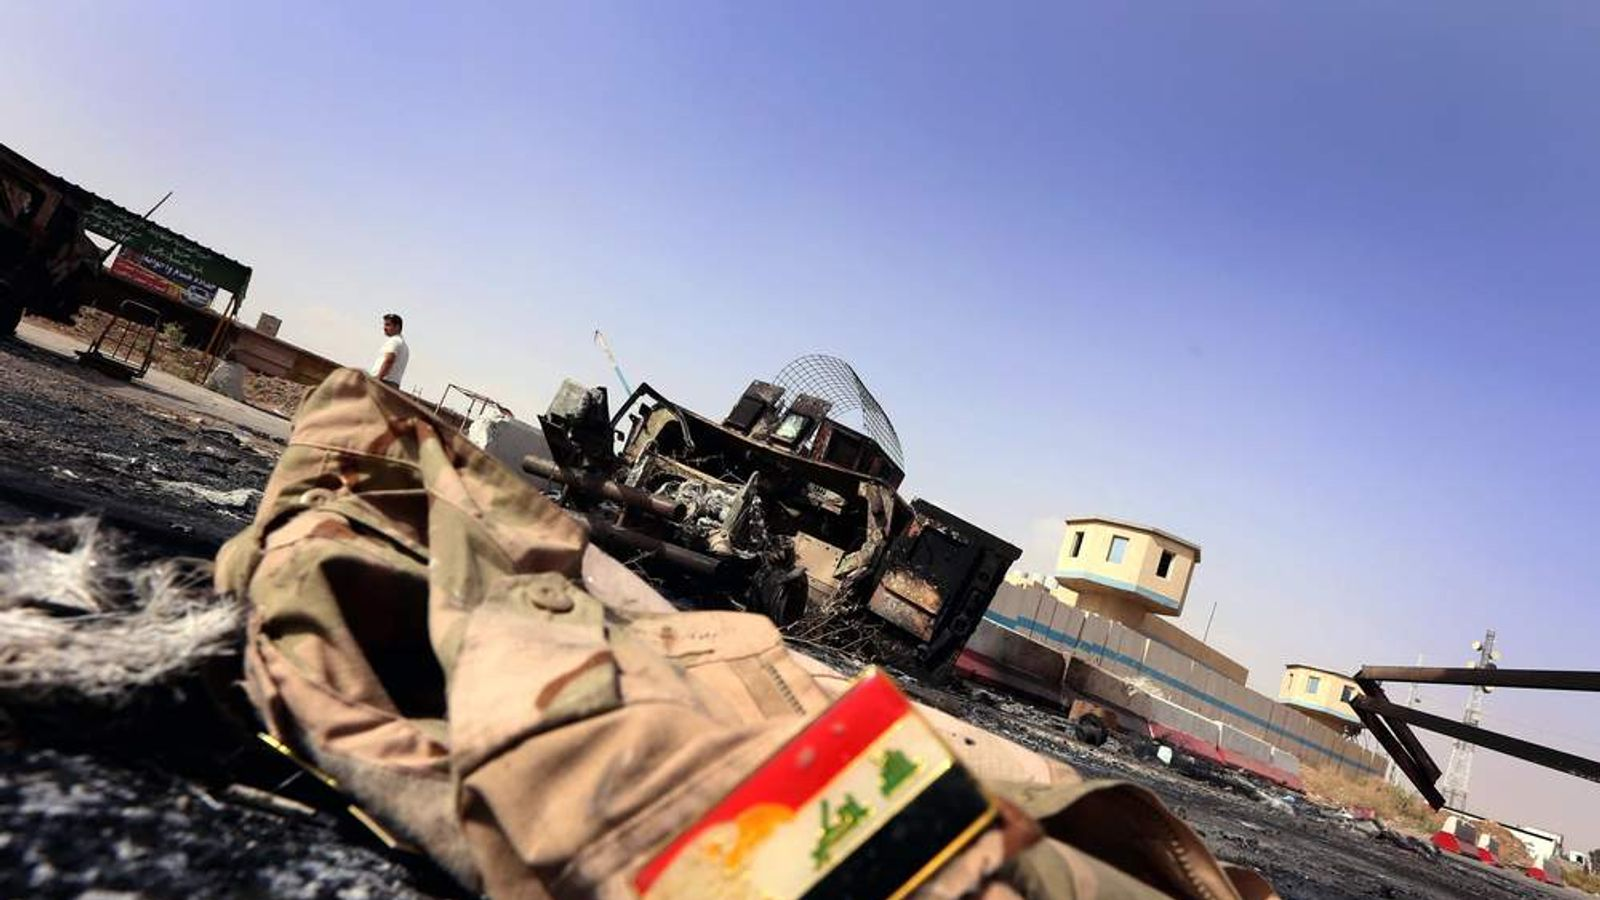 The jacket belonging to an Iraqi Army uniform lies on the ground in front of the remains of a burnt out Iraqi army vehicle.